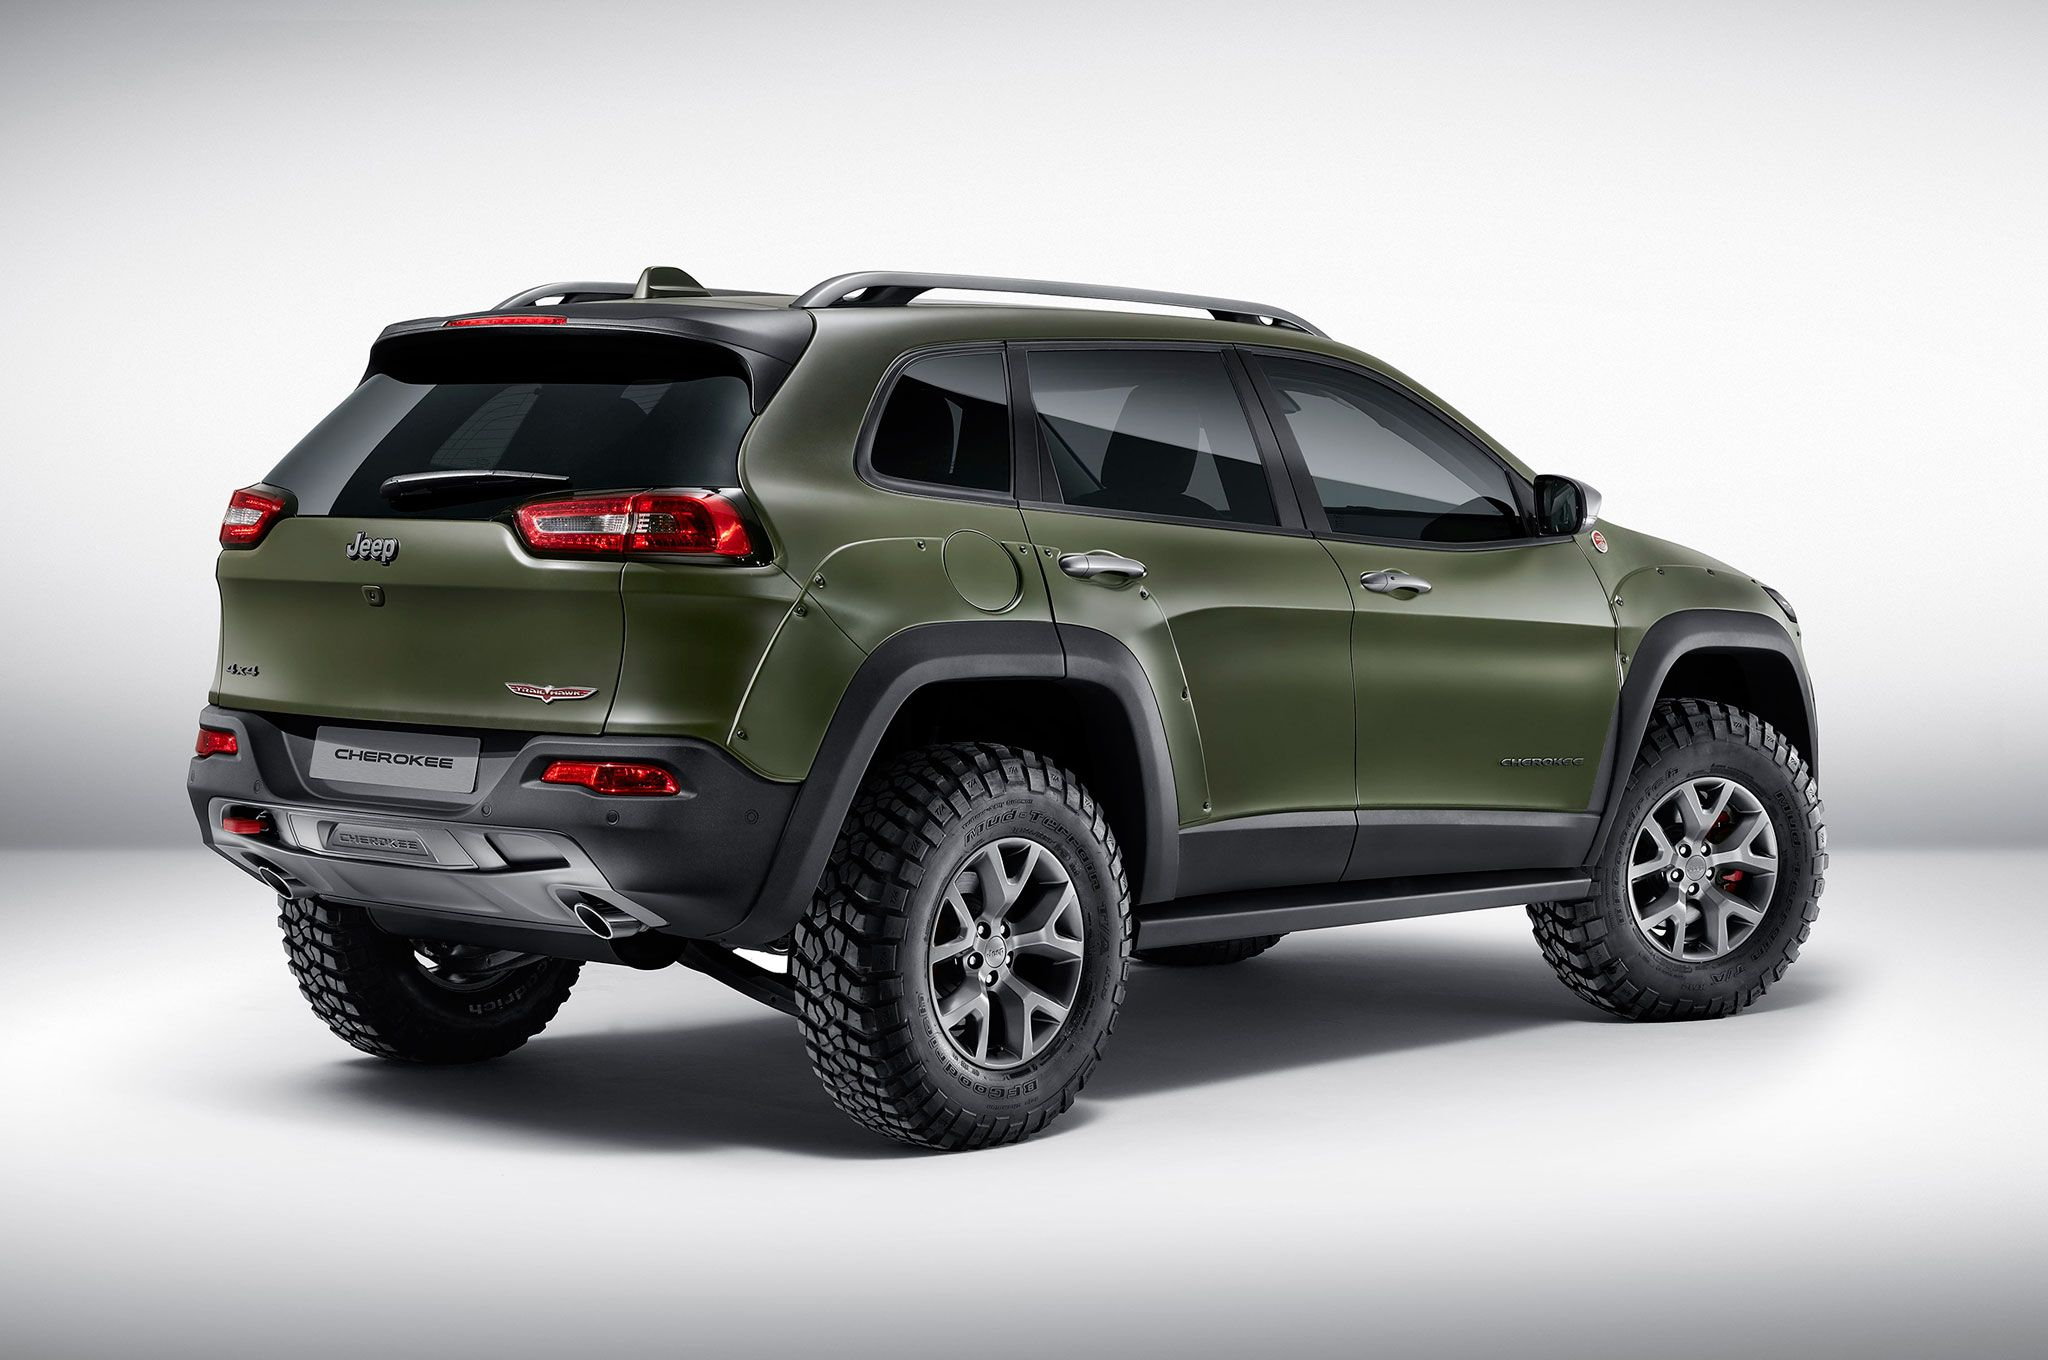 The Daily Dose - Jeep announces new models - VJ Drives Tacoma